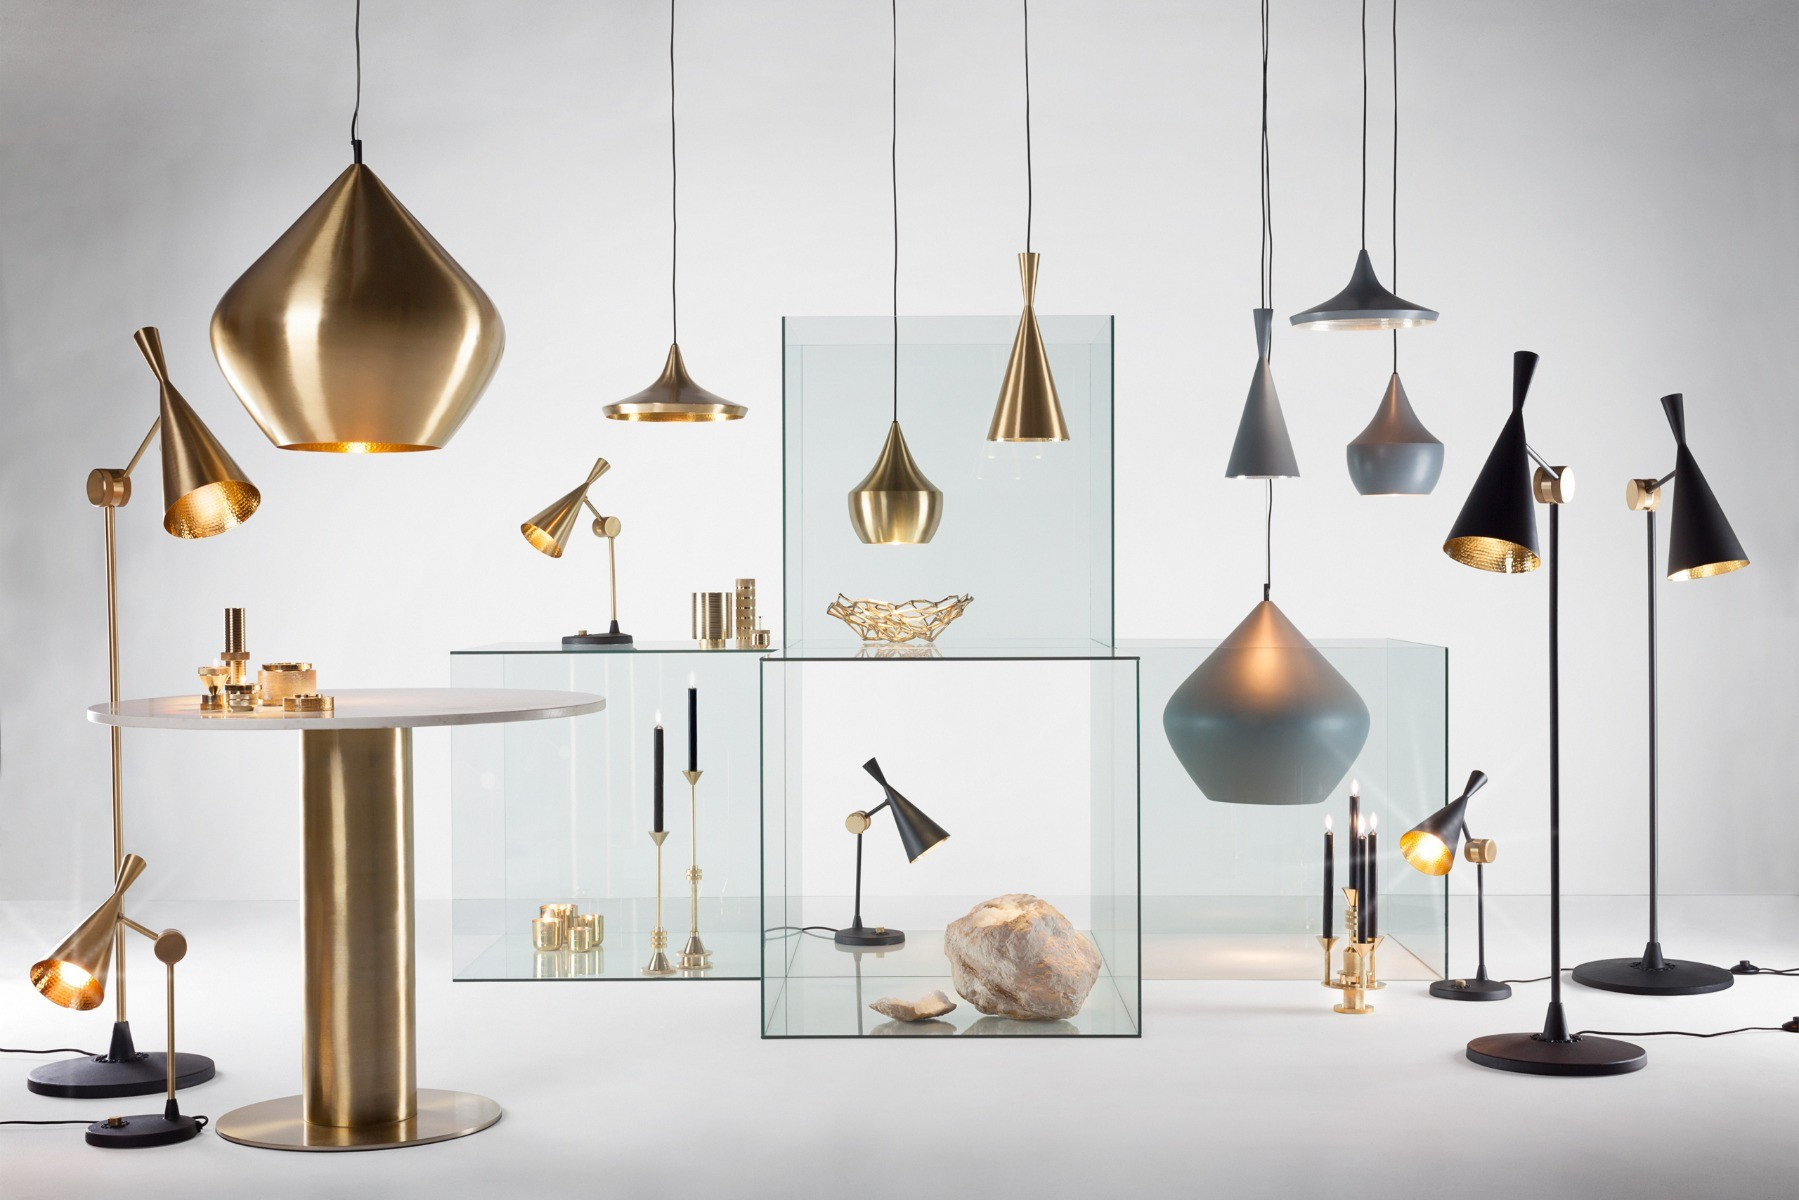 Tom Dixon Beat lights